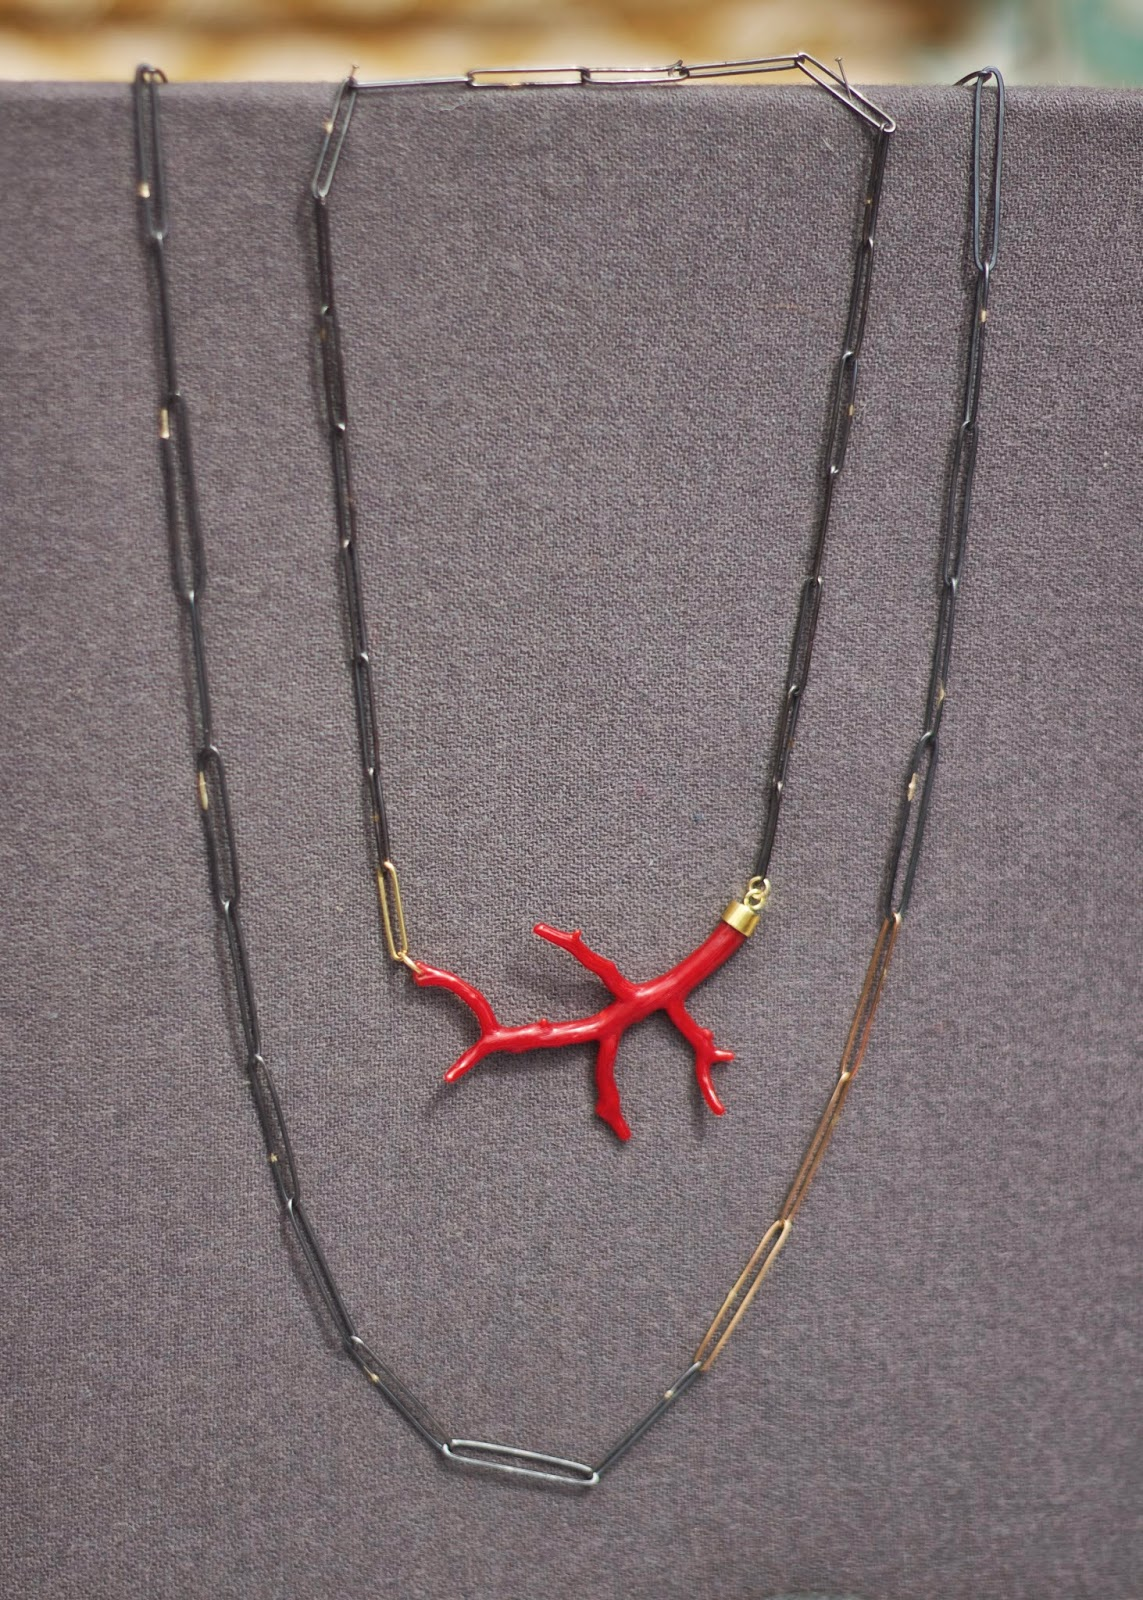 Meander Works Jewelry, Meander Works red coral necklace, meander works, jewelry in san diego, jewelry maker in san diego